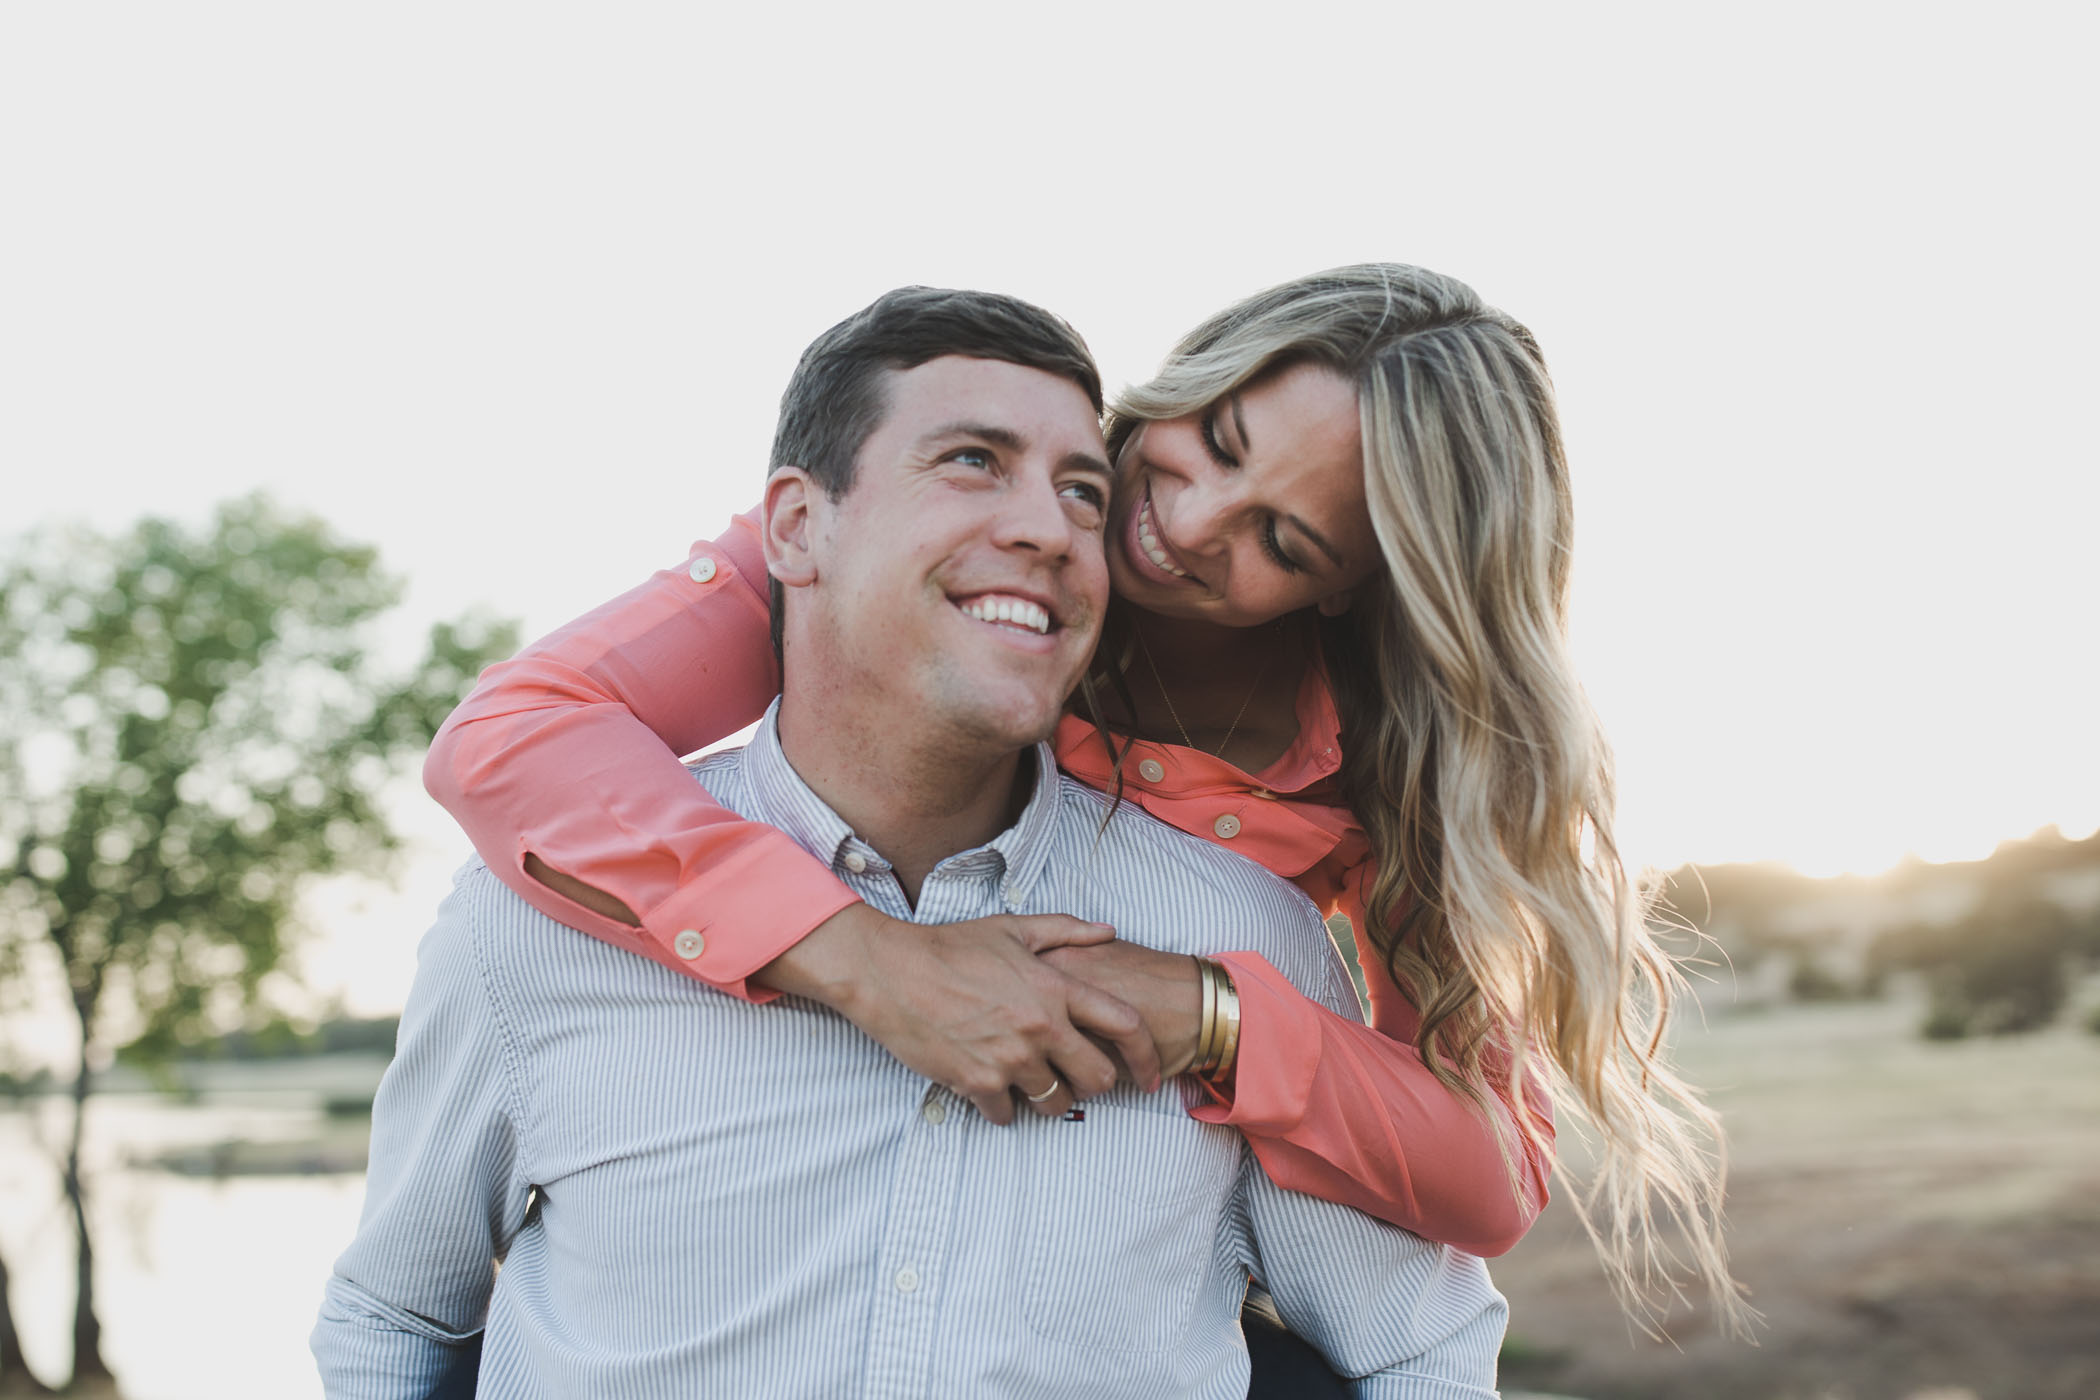 AVH_Photography_upper_bidwell_park_engagement_photography_chico_california_spring_bidwell_golf_course_0035.jpg